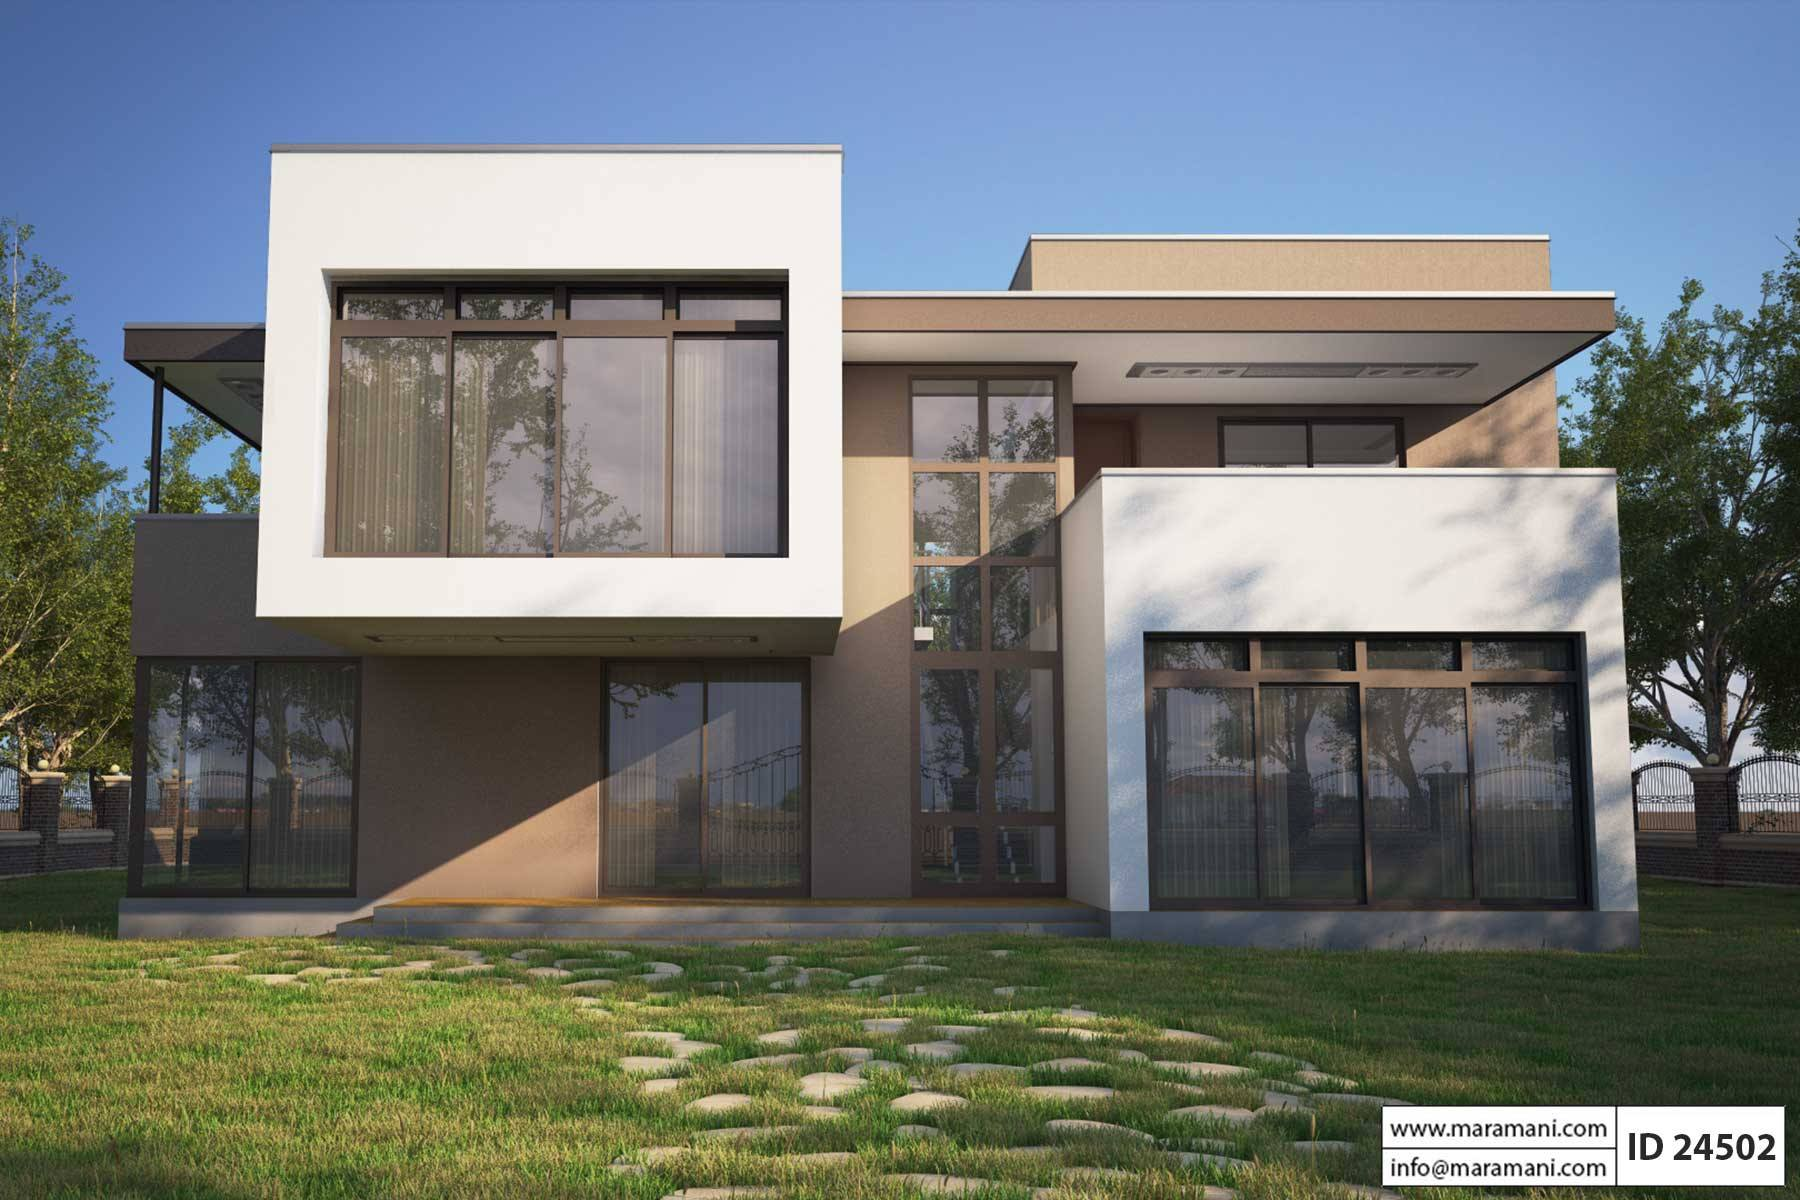 Ordinary Modern House Plans With 4 Bedrooms Part - 7: Maramani.com